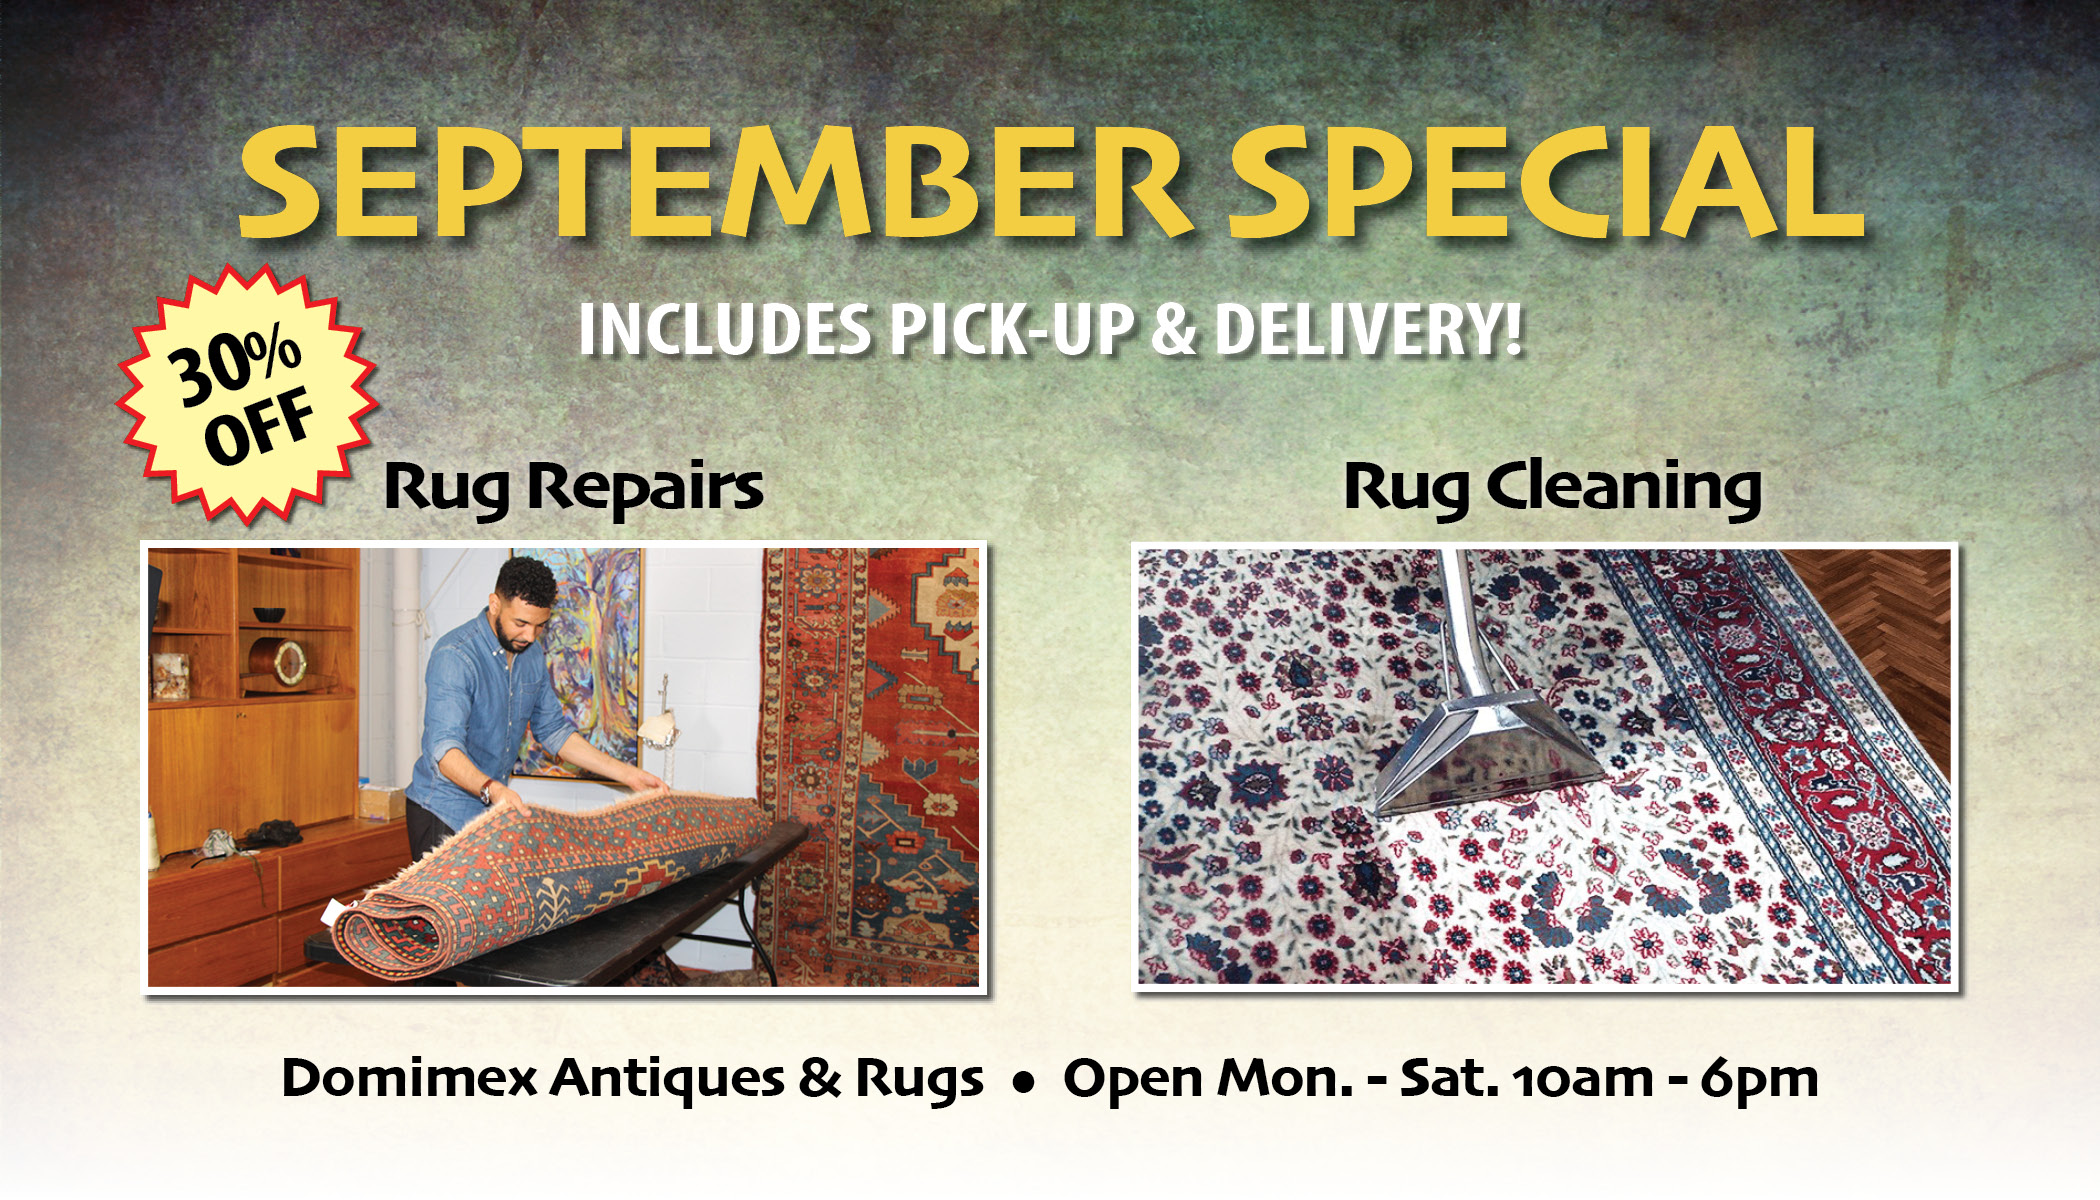 rug-repair-and-cleaning-september-special